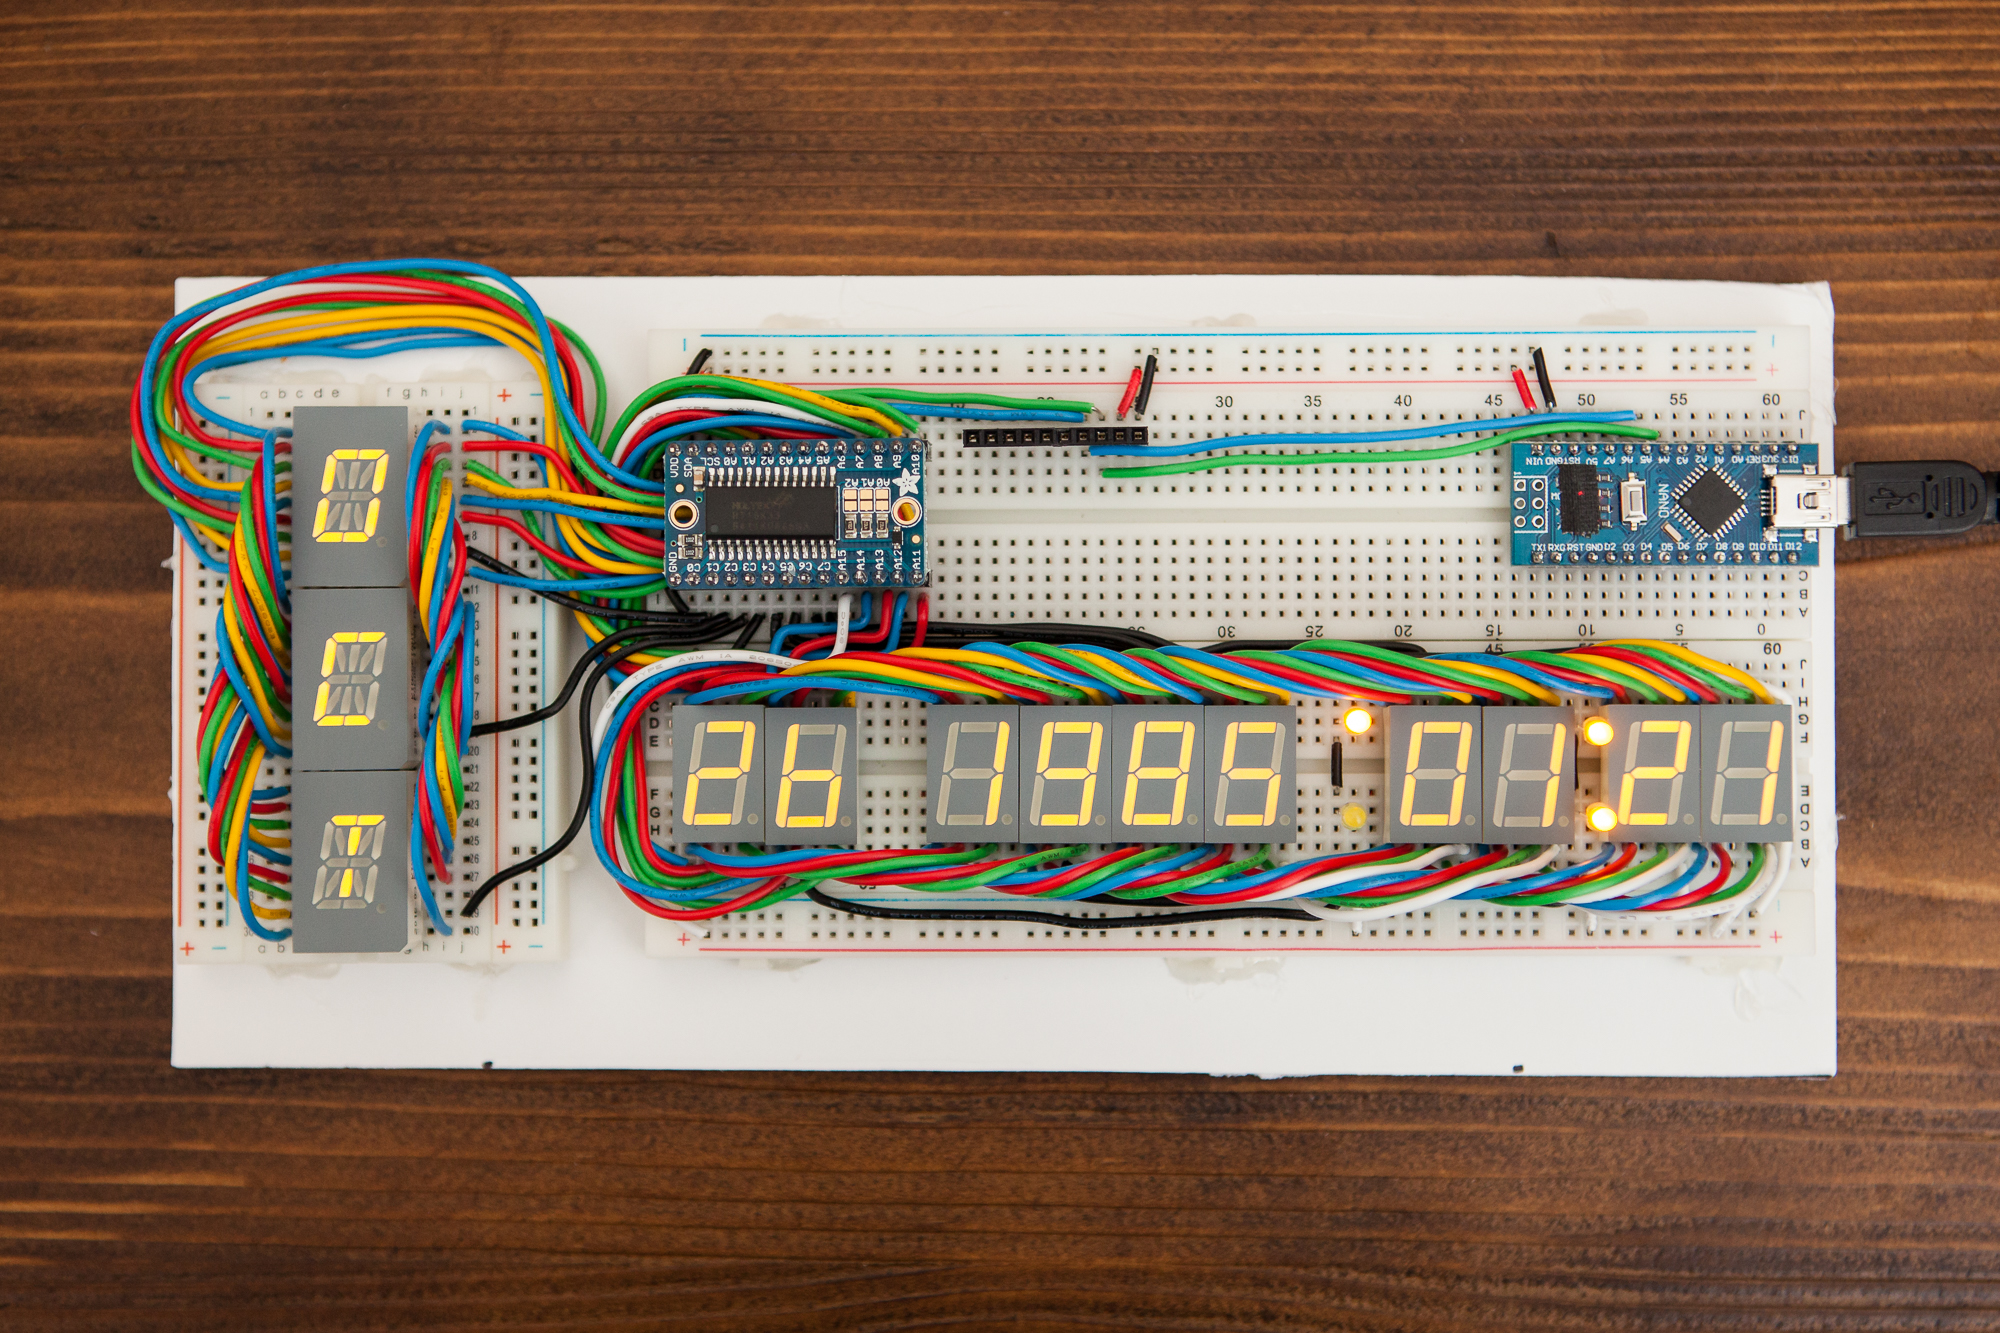 Making A Time Circuit Display Schematic Parts Not Included On Breadboard Working Copy Of The If Possible So Thats Exactly What I Did Remember Prototype V00 Its To Give It An Upgrade